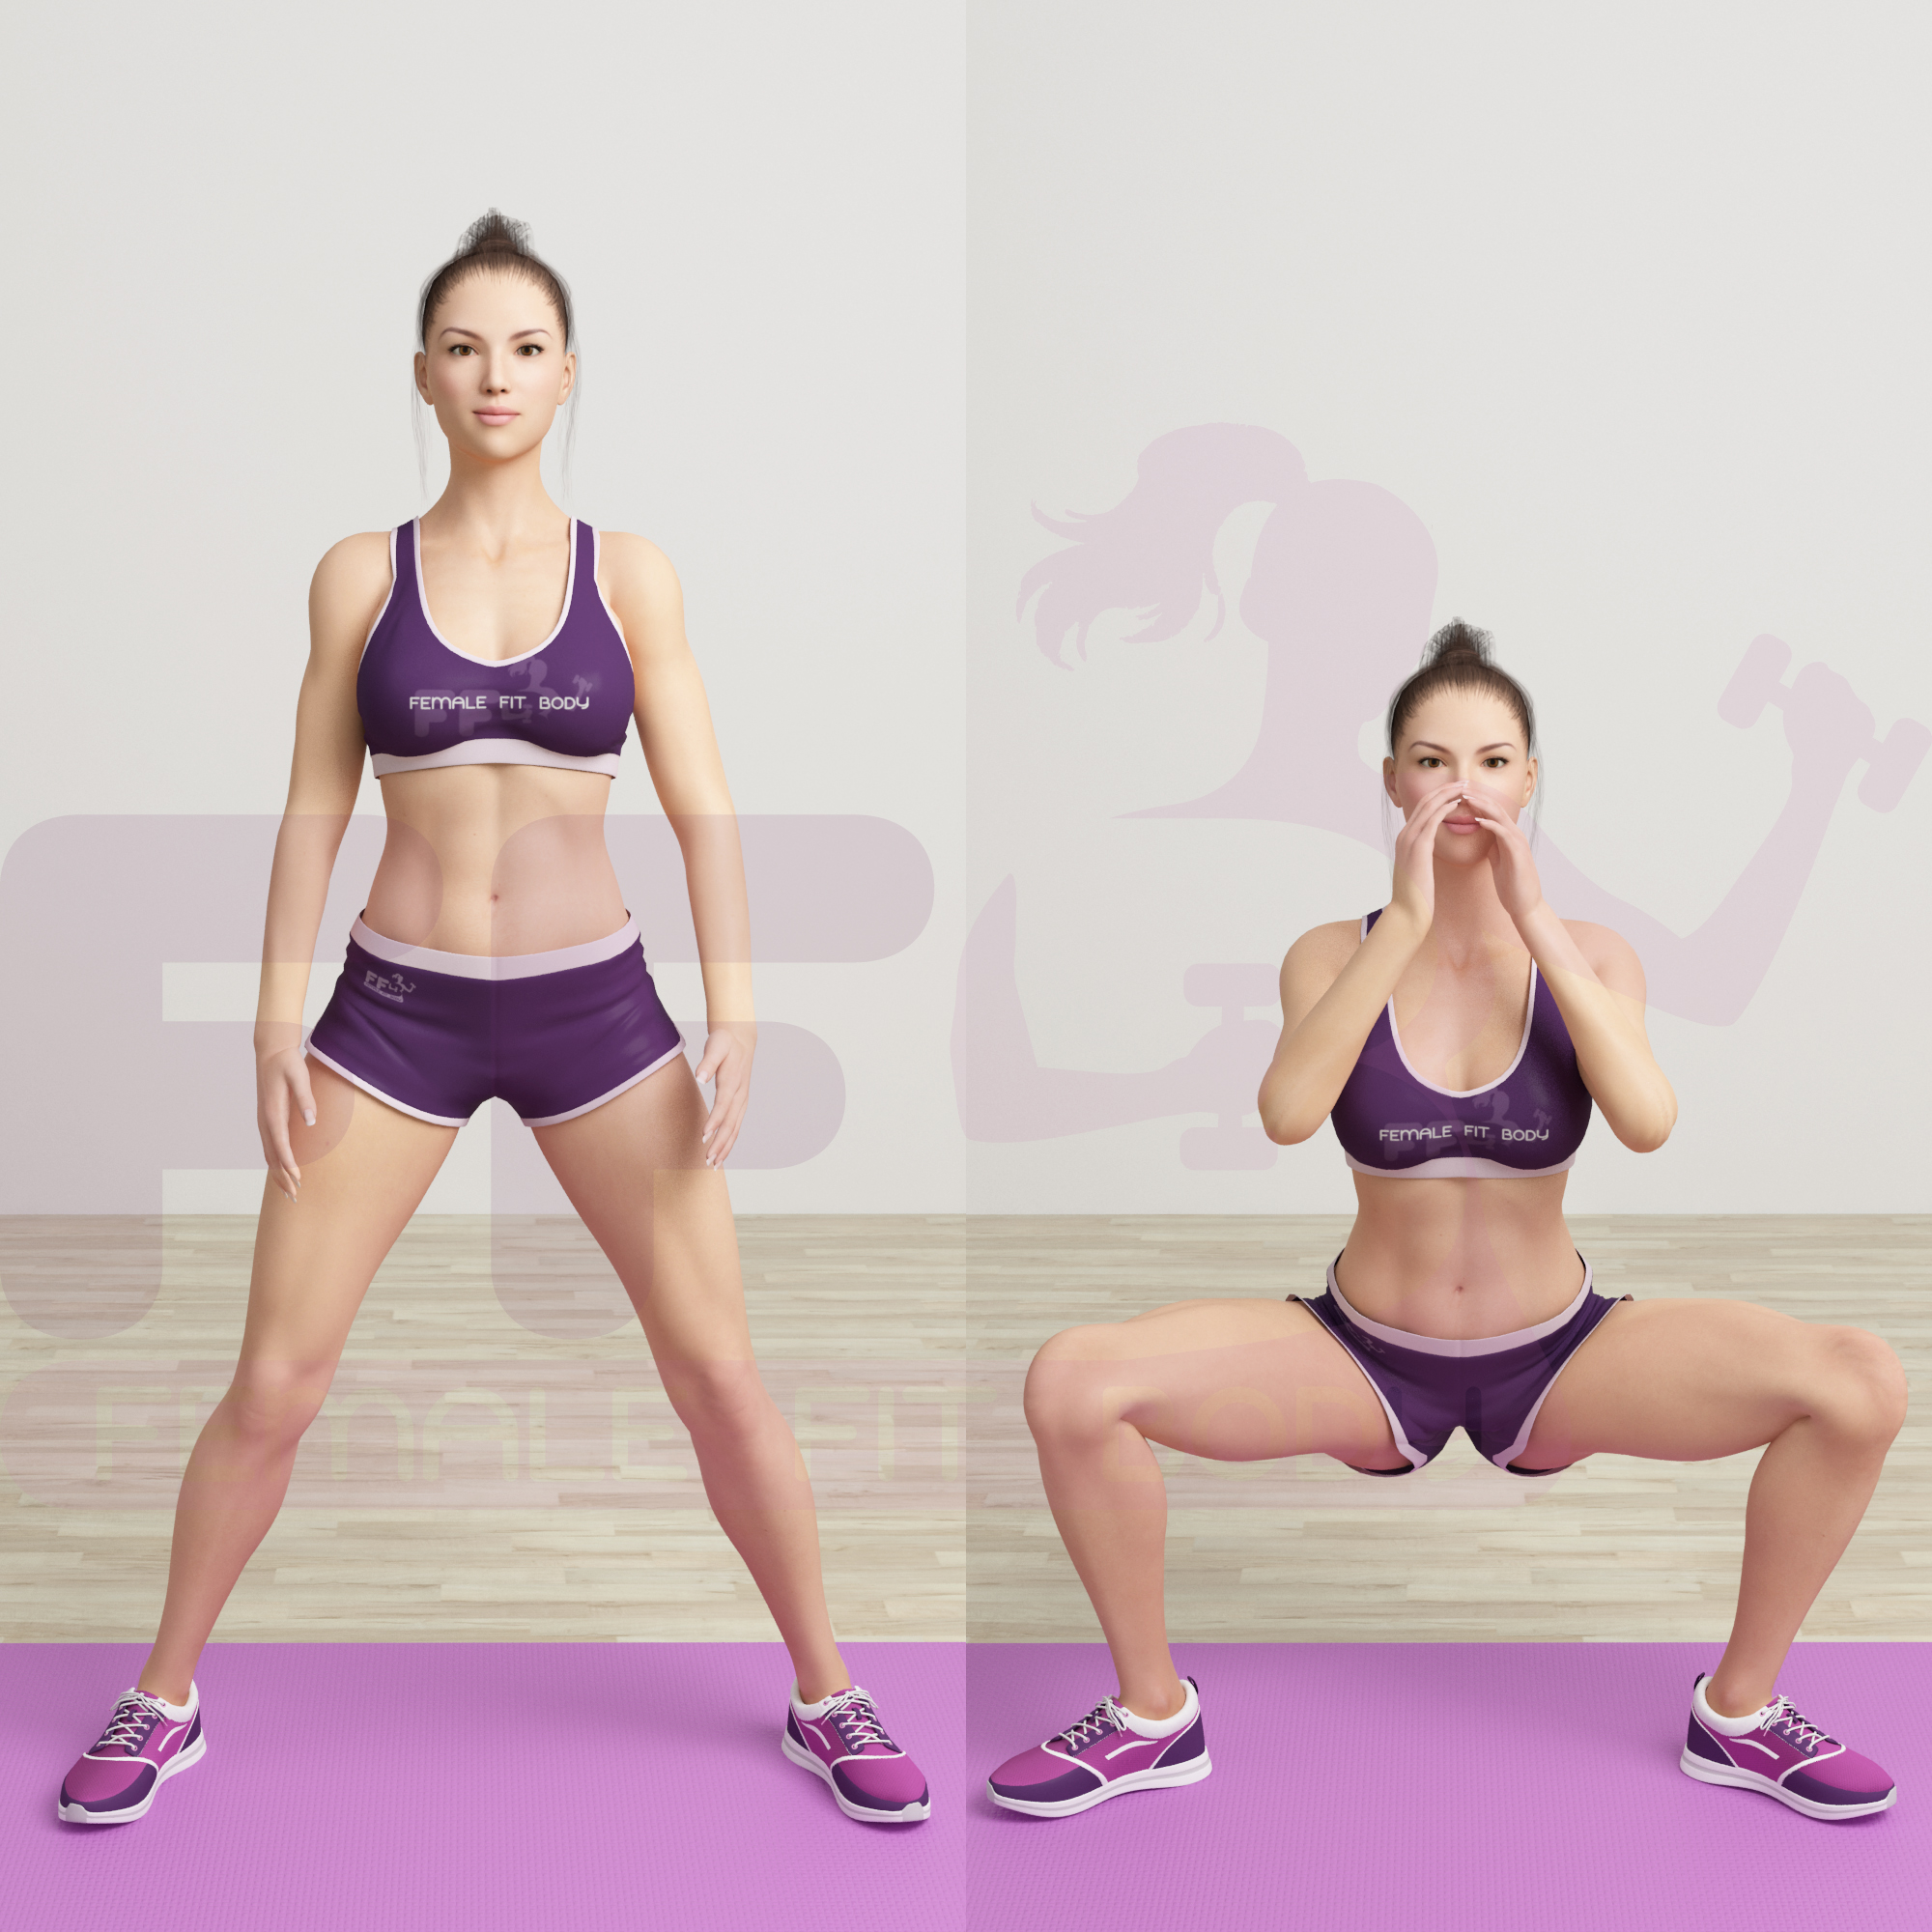 Sumo squats to calf raise